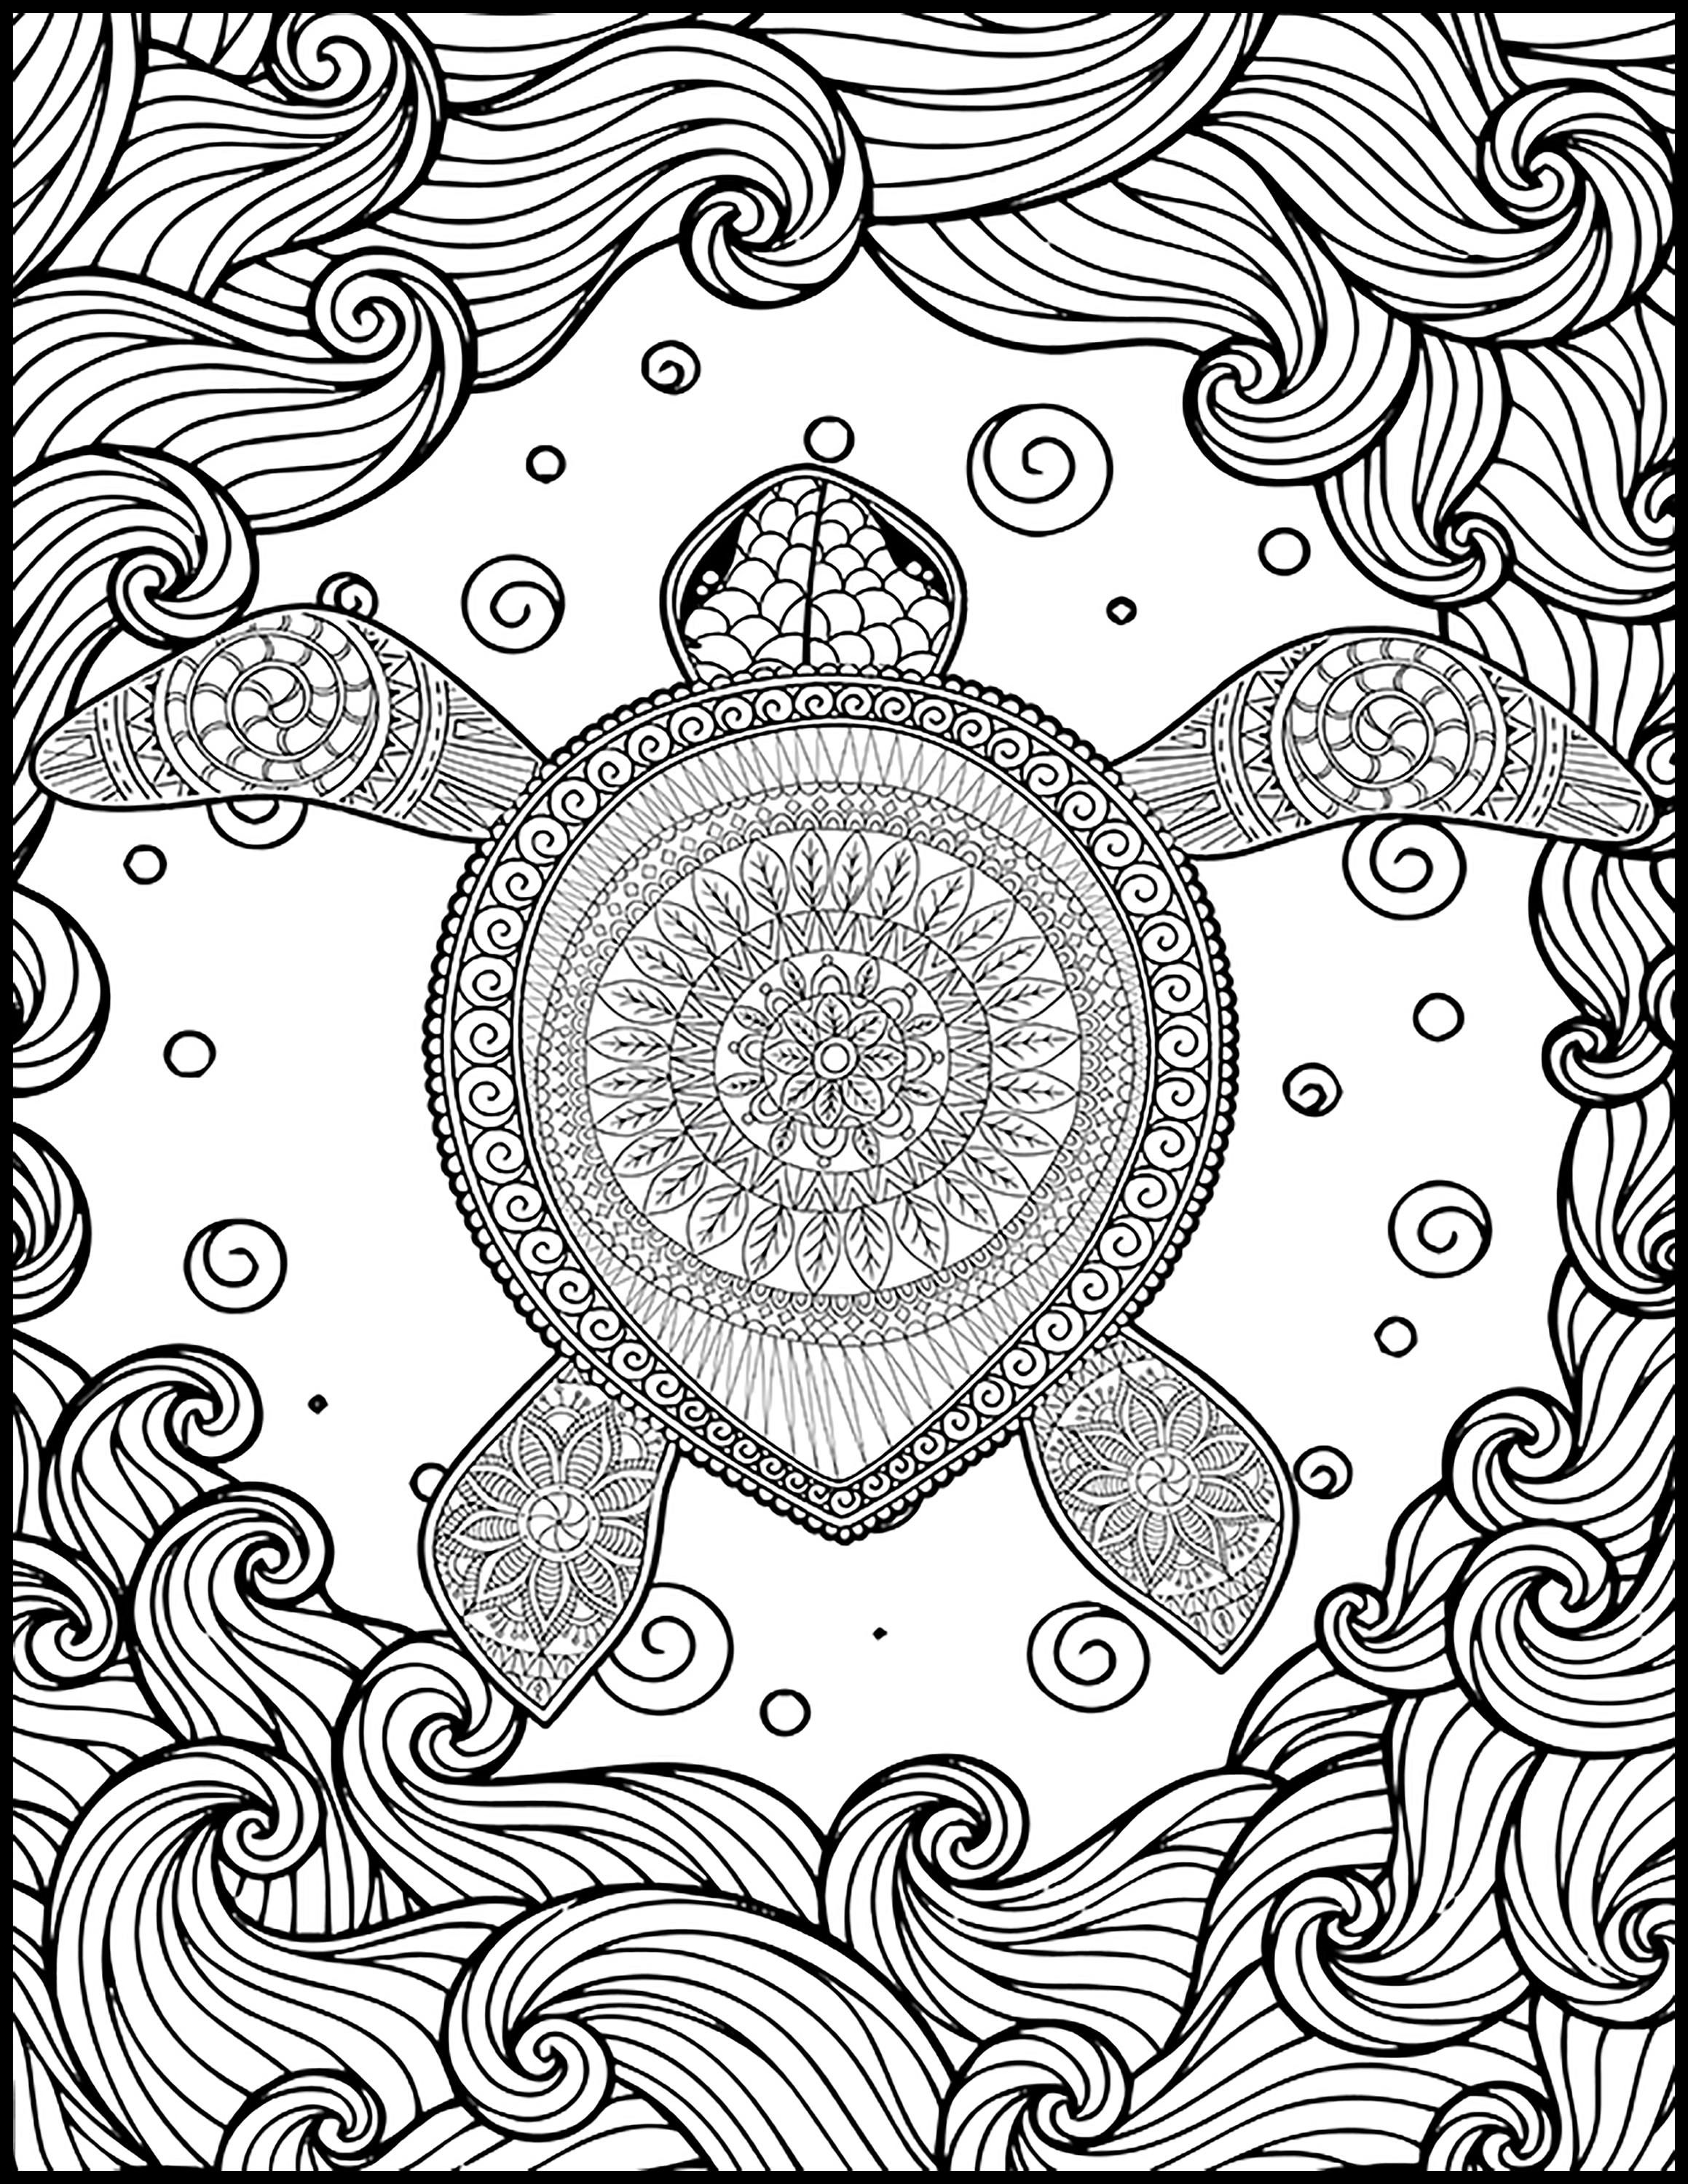 Animal Adult Coloring Page - Turtle Coloring Page for Adults ...